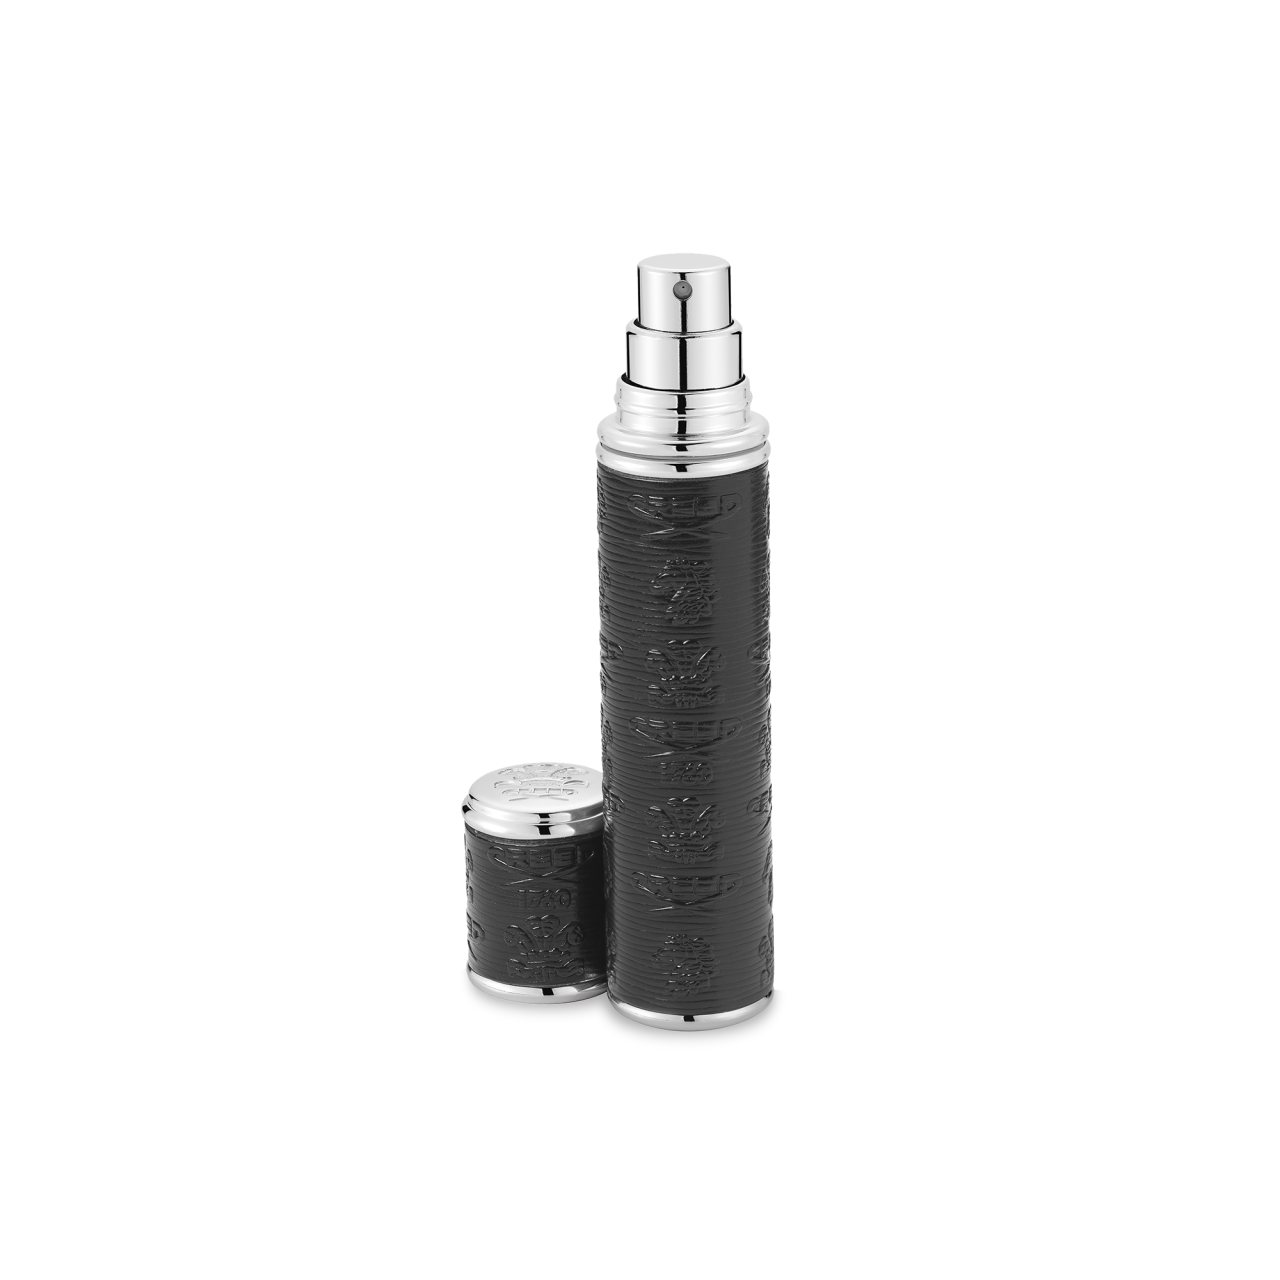 Black With Silver Trim Pocket Atomizer